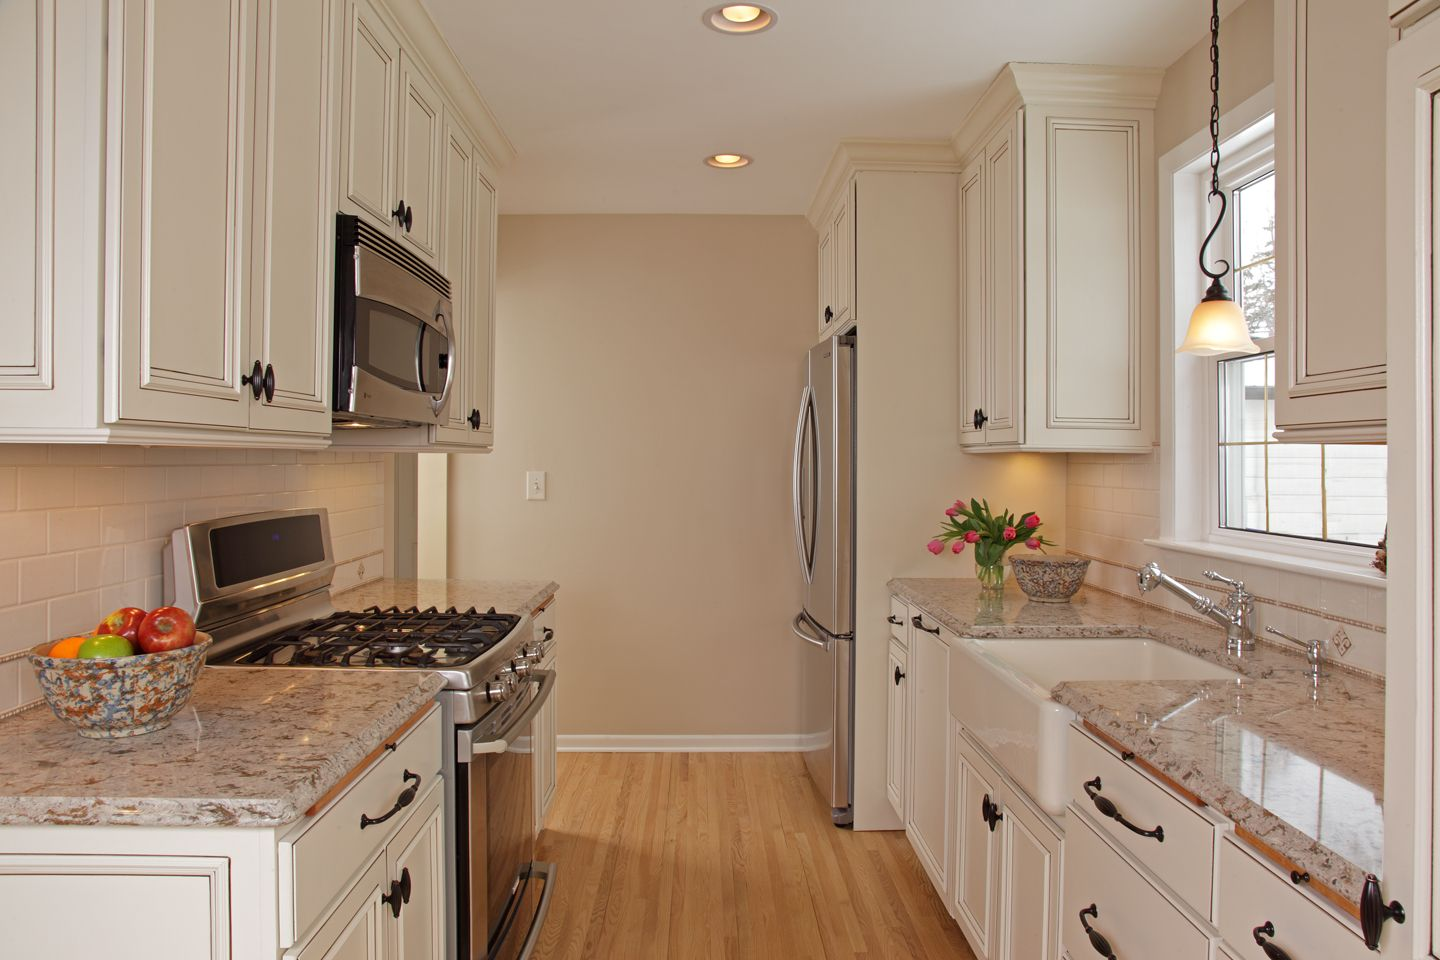 Farmhouse Kitchen White Cabinets farmhouse kitchen sink, granite countertops, white cabinets and